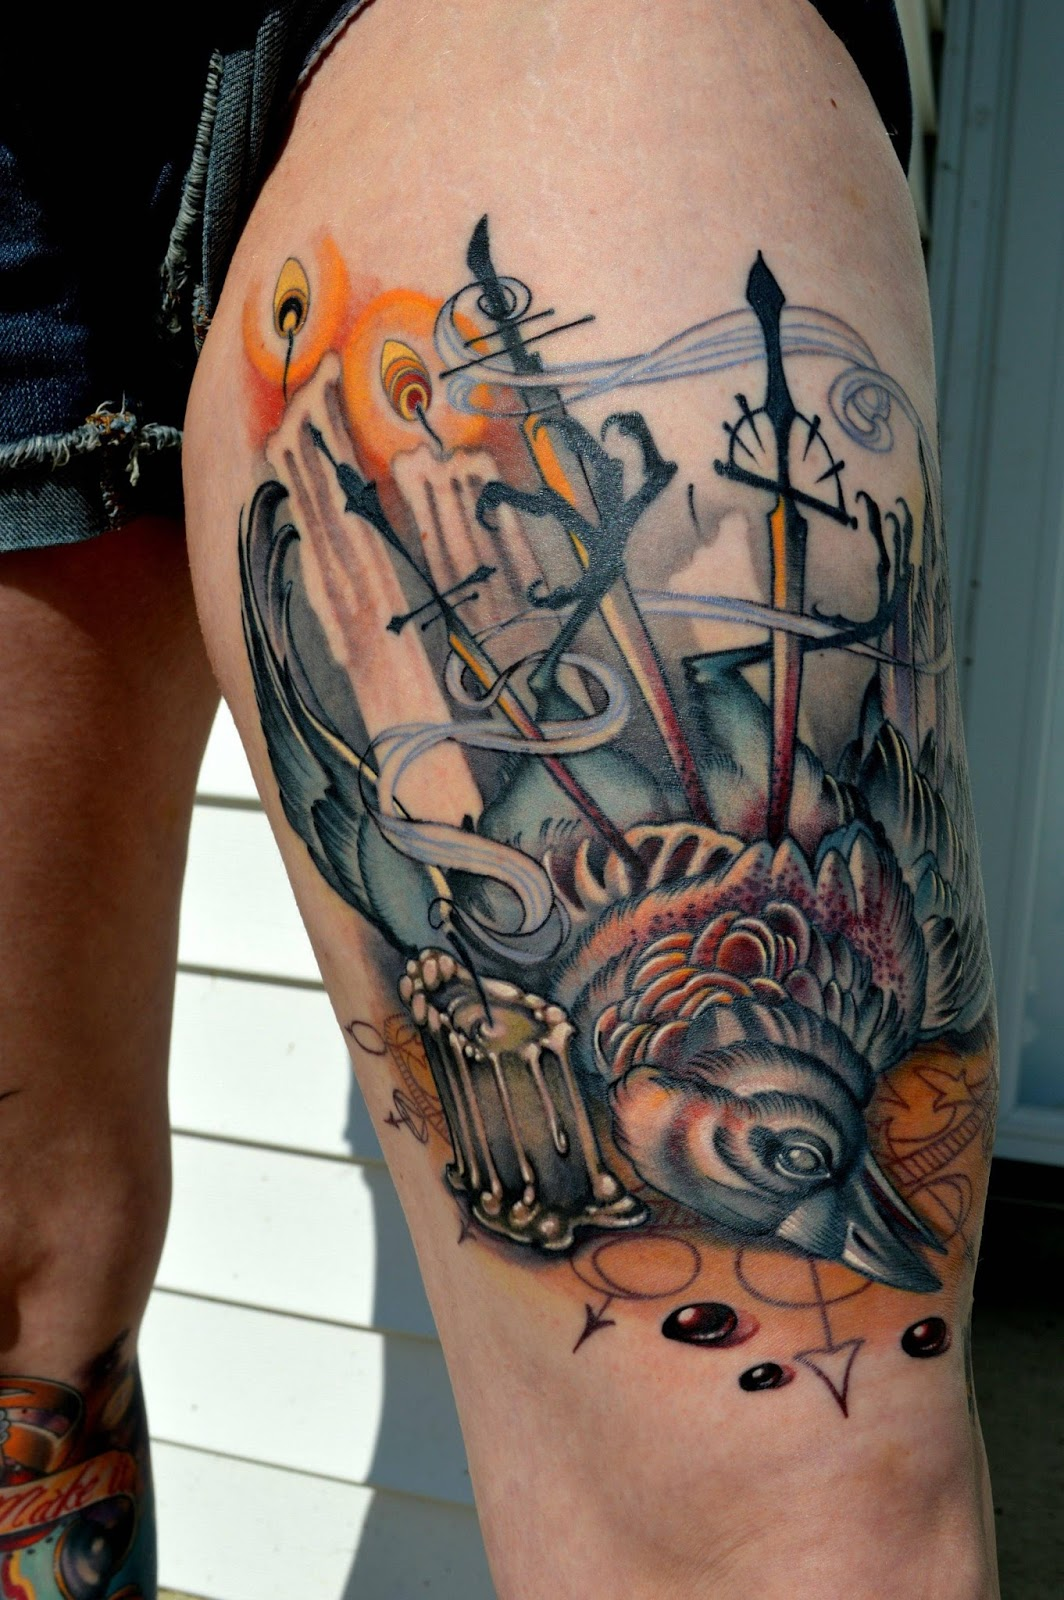 Awesome inks tattoo ideas inspiration and information for Old school day of the dead tattoo